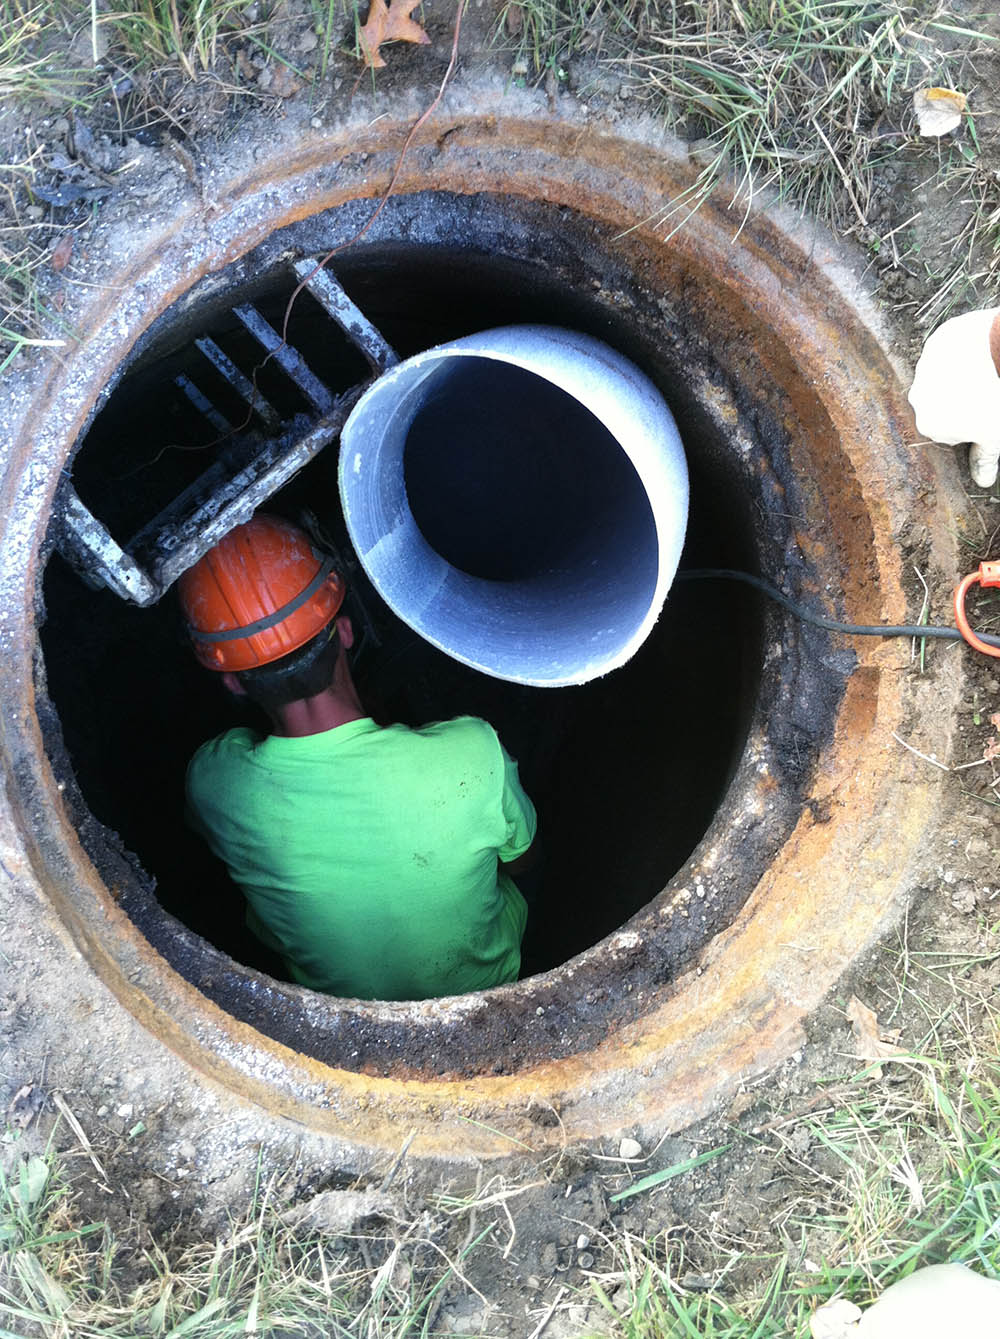 CIPP Method Giving New Life to Aging Pipes Outside of Memphis